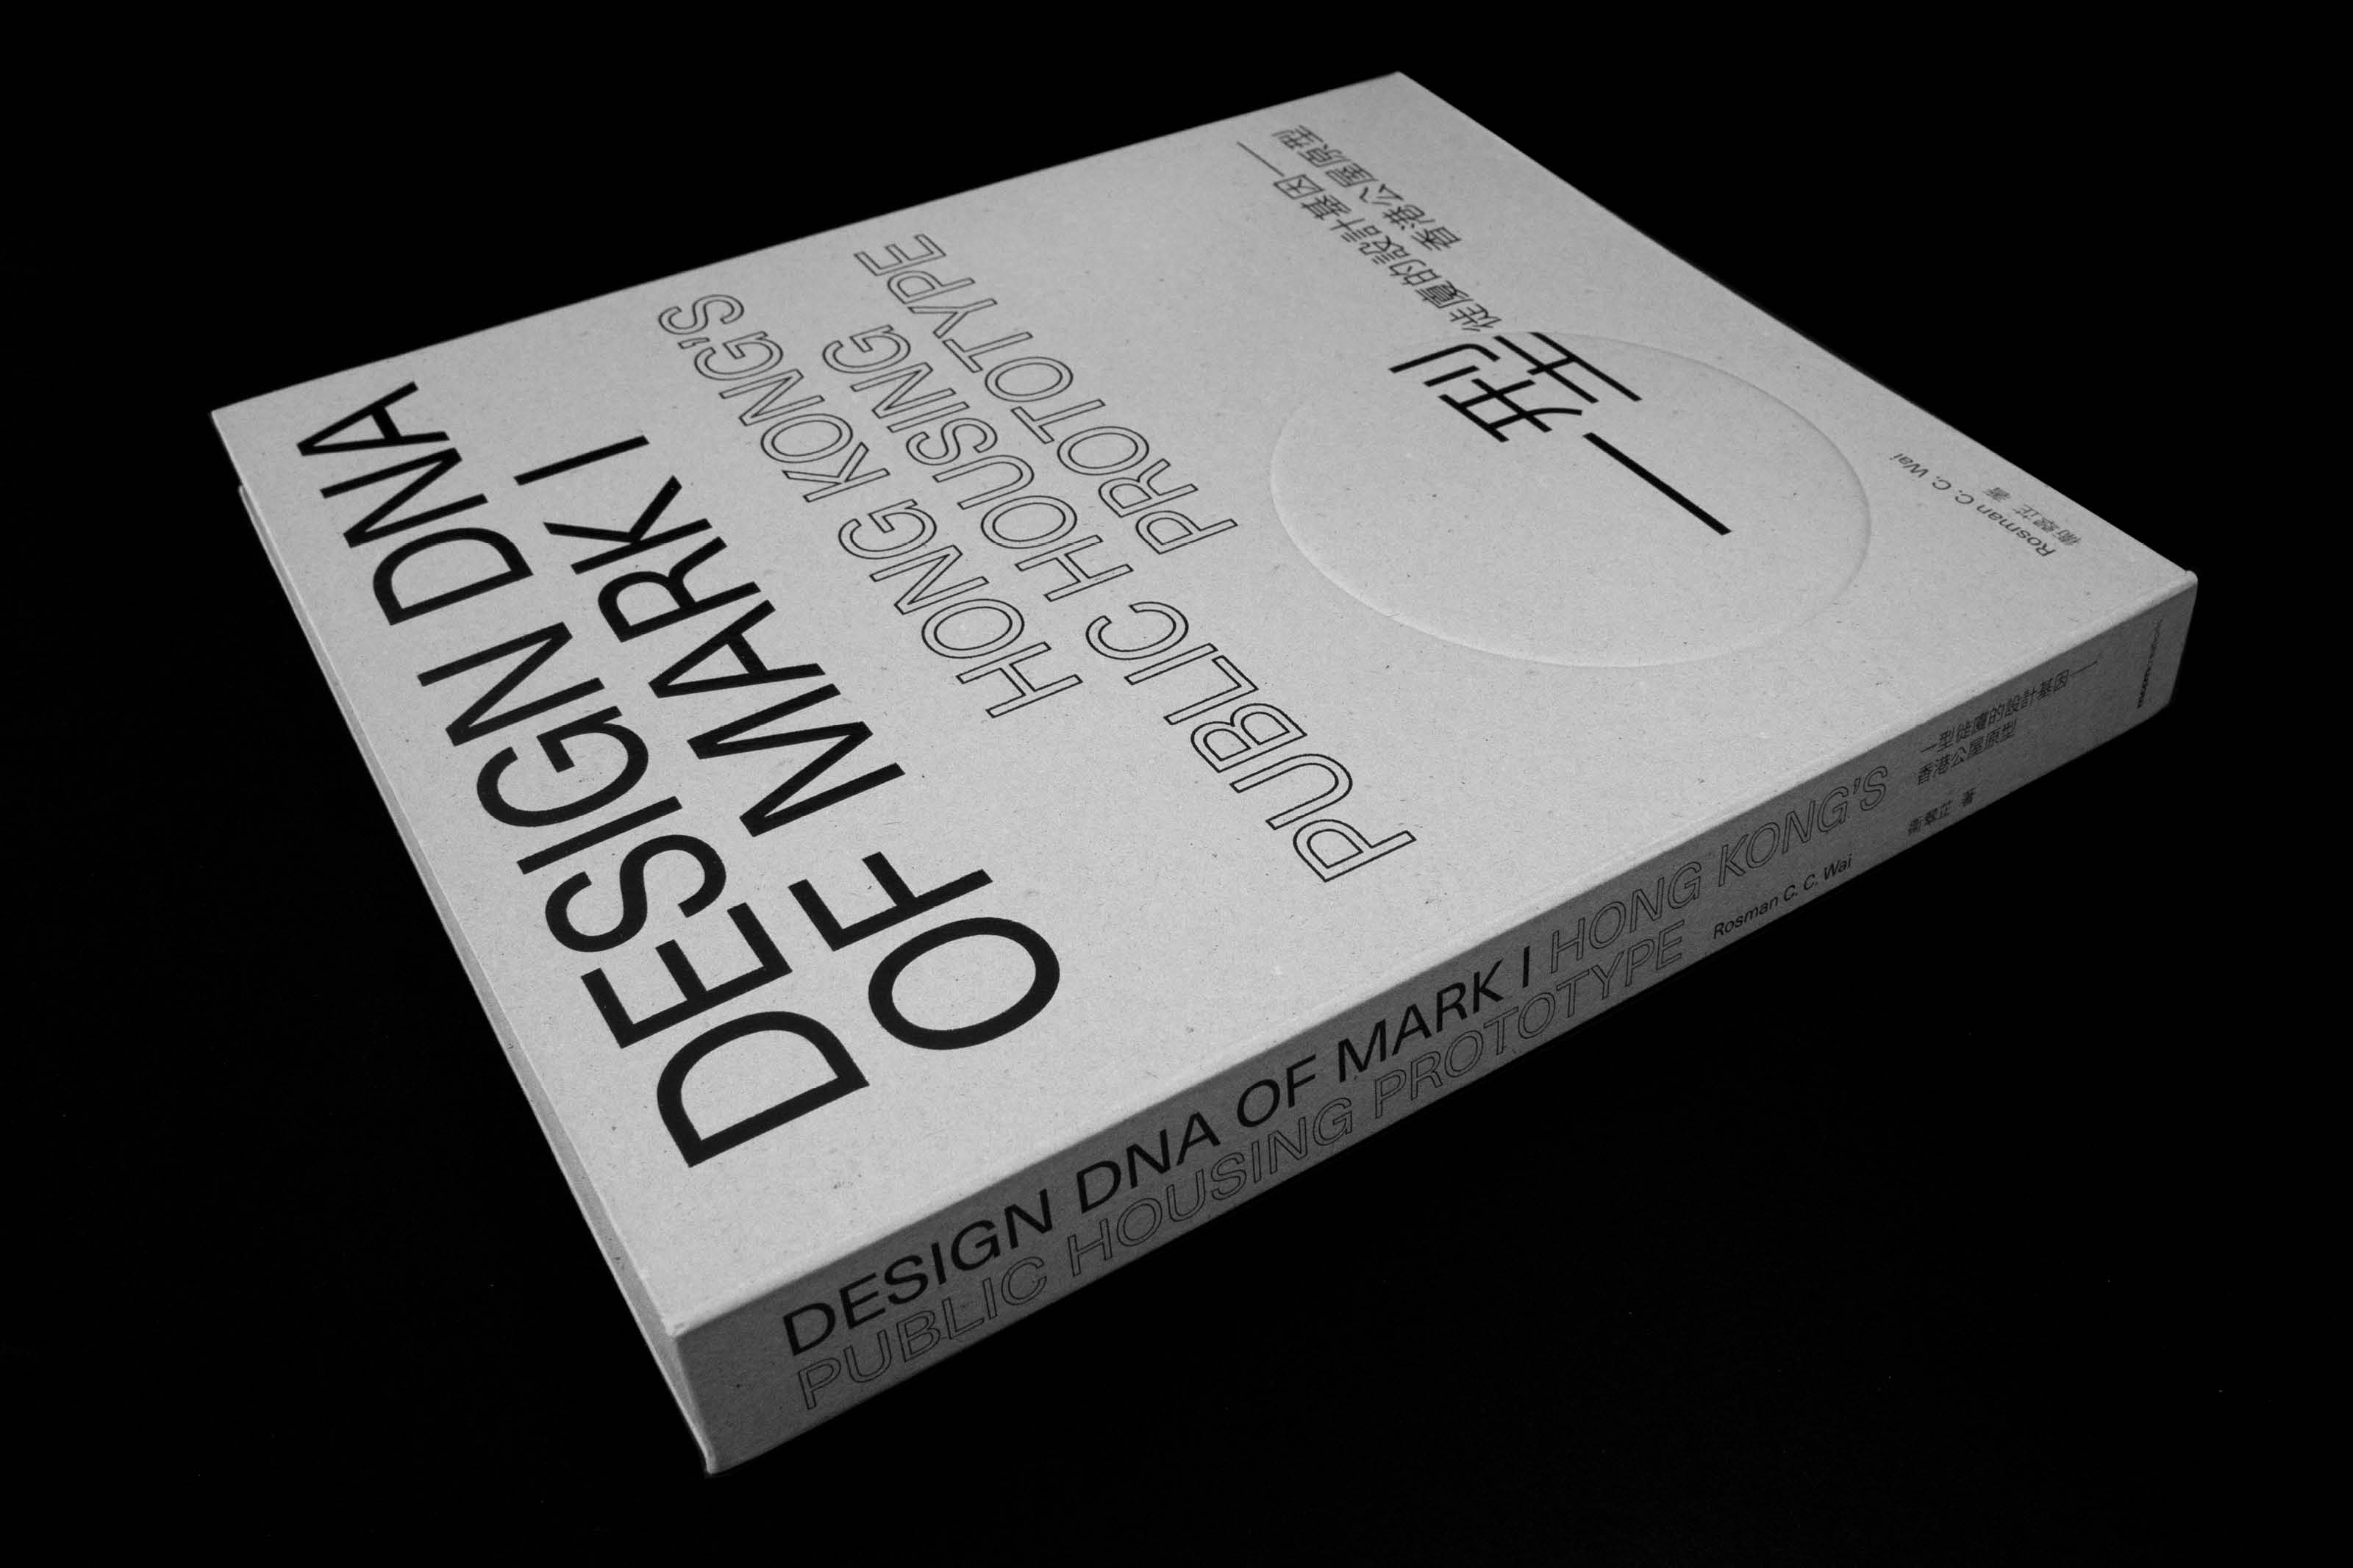 A Book That Documents the Design Development of Mark 1 Block Architecture in Hong Kong